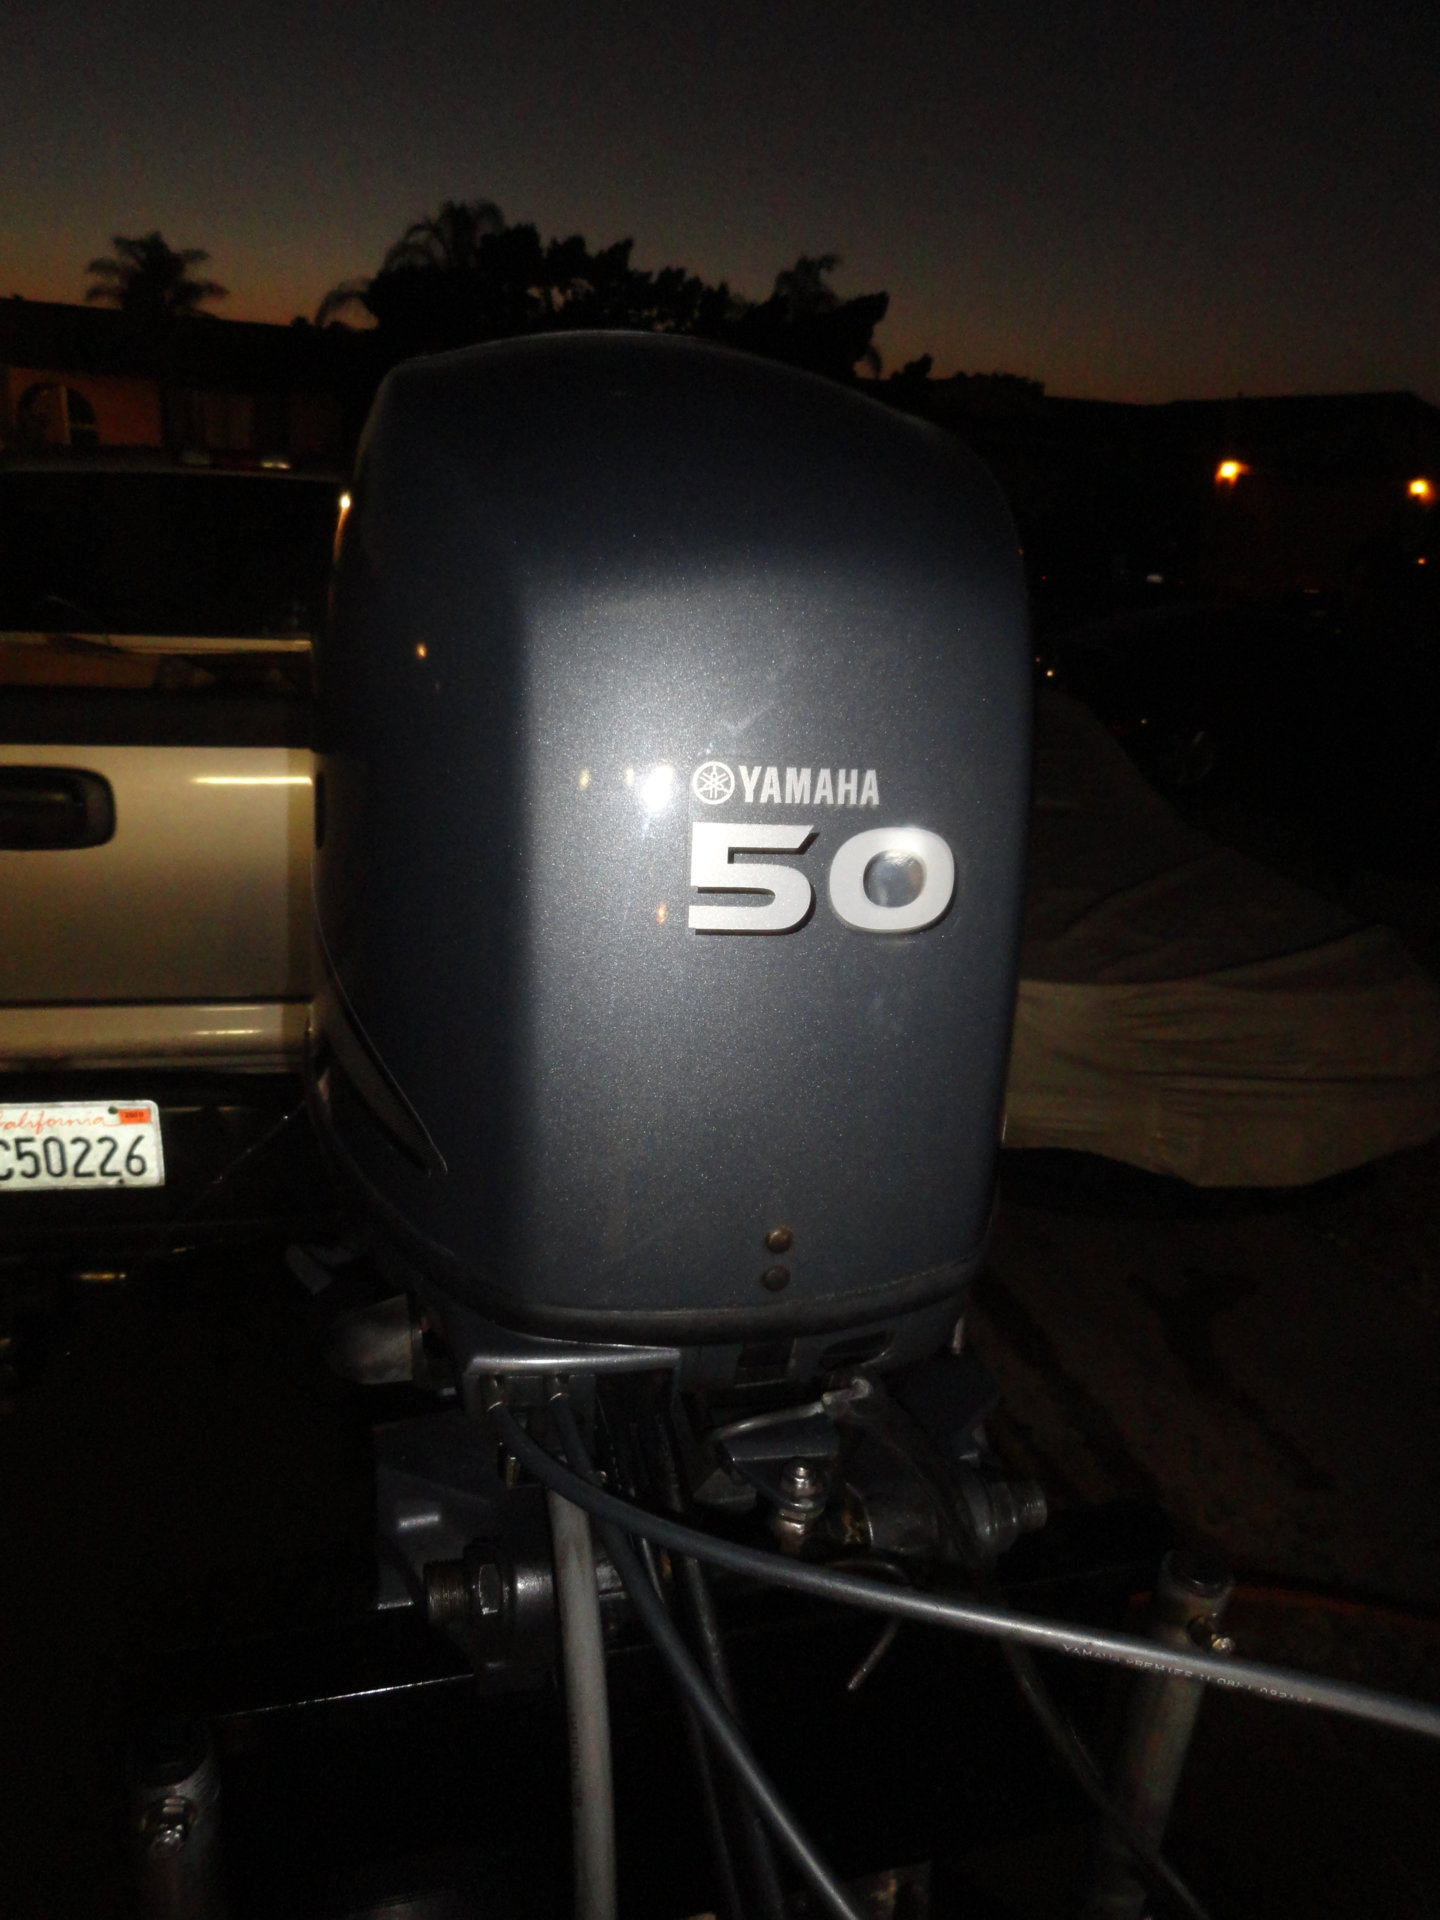 Yamaha F50 Outboard Motor 142 Hours Clean Fuel Injected